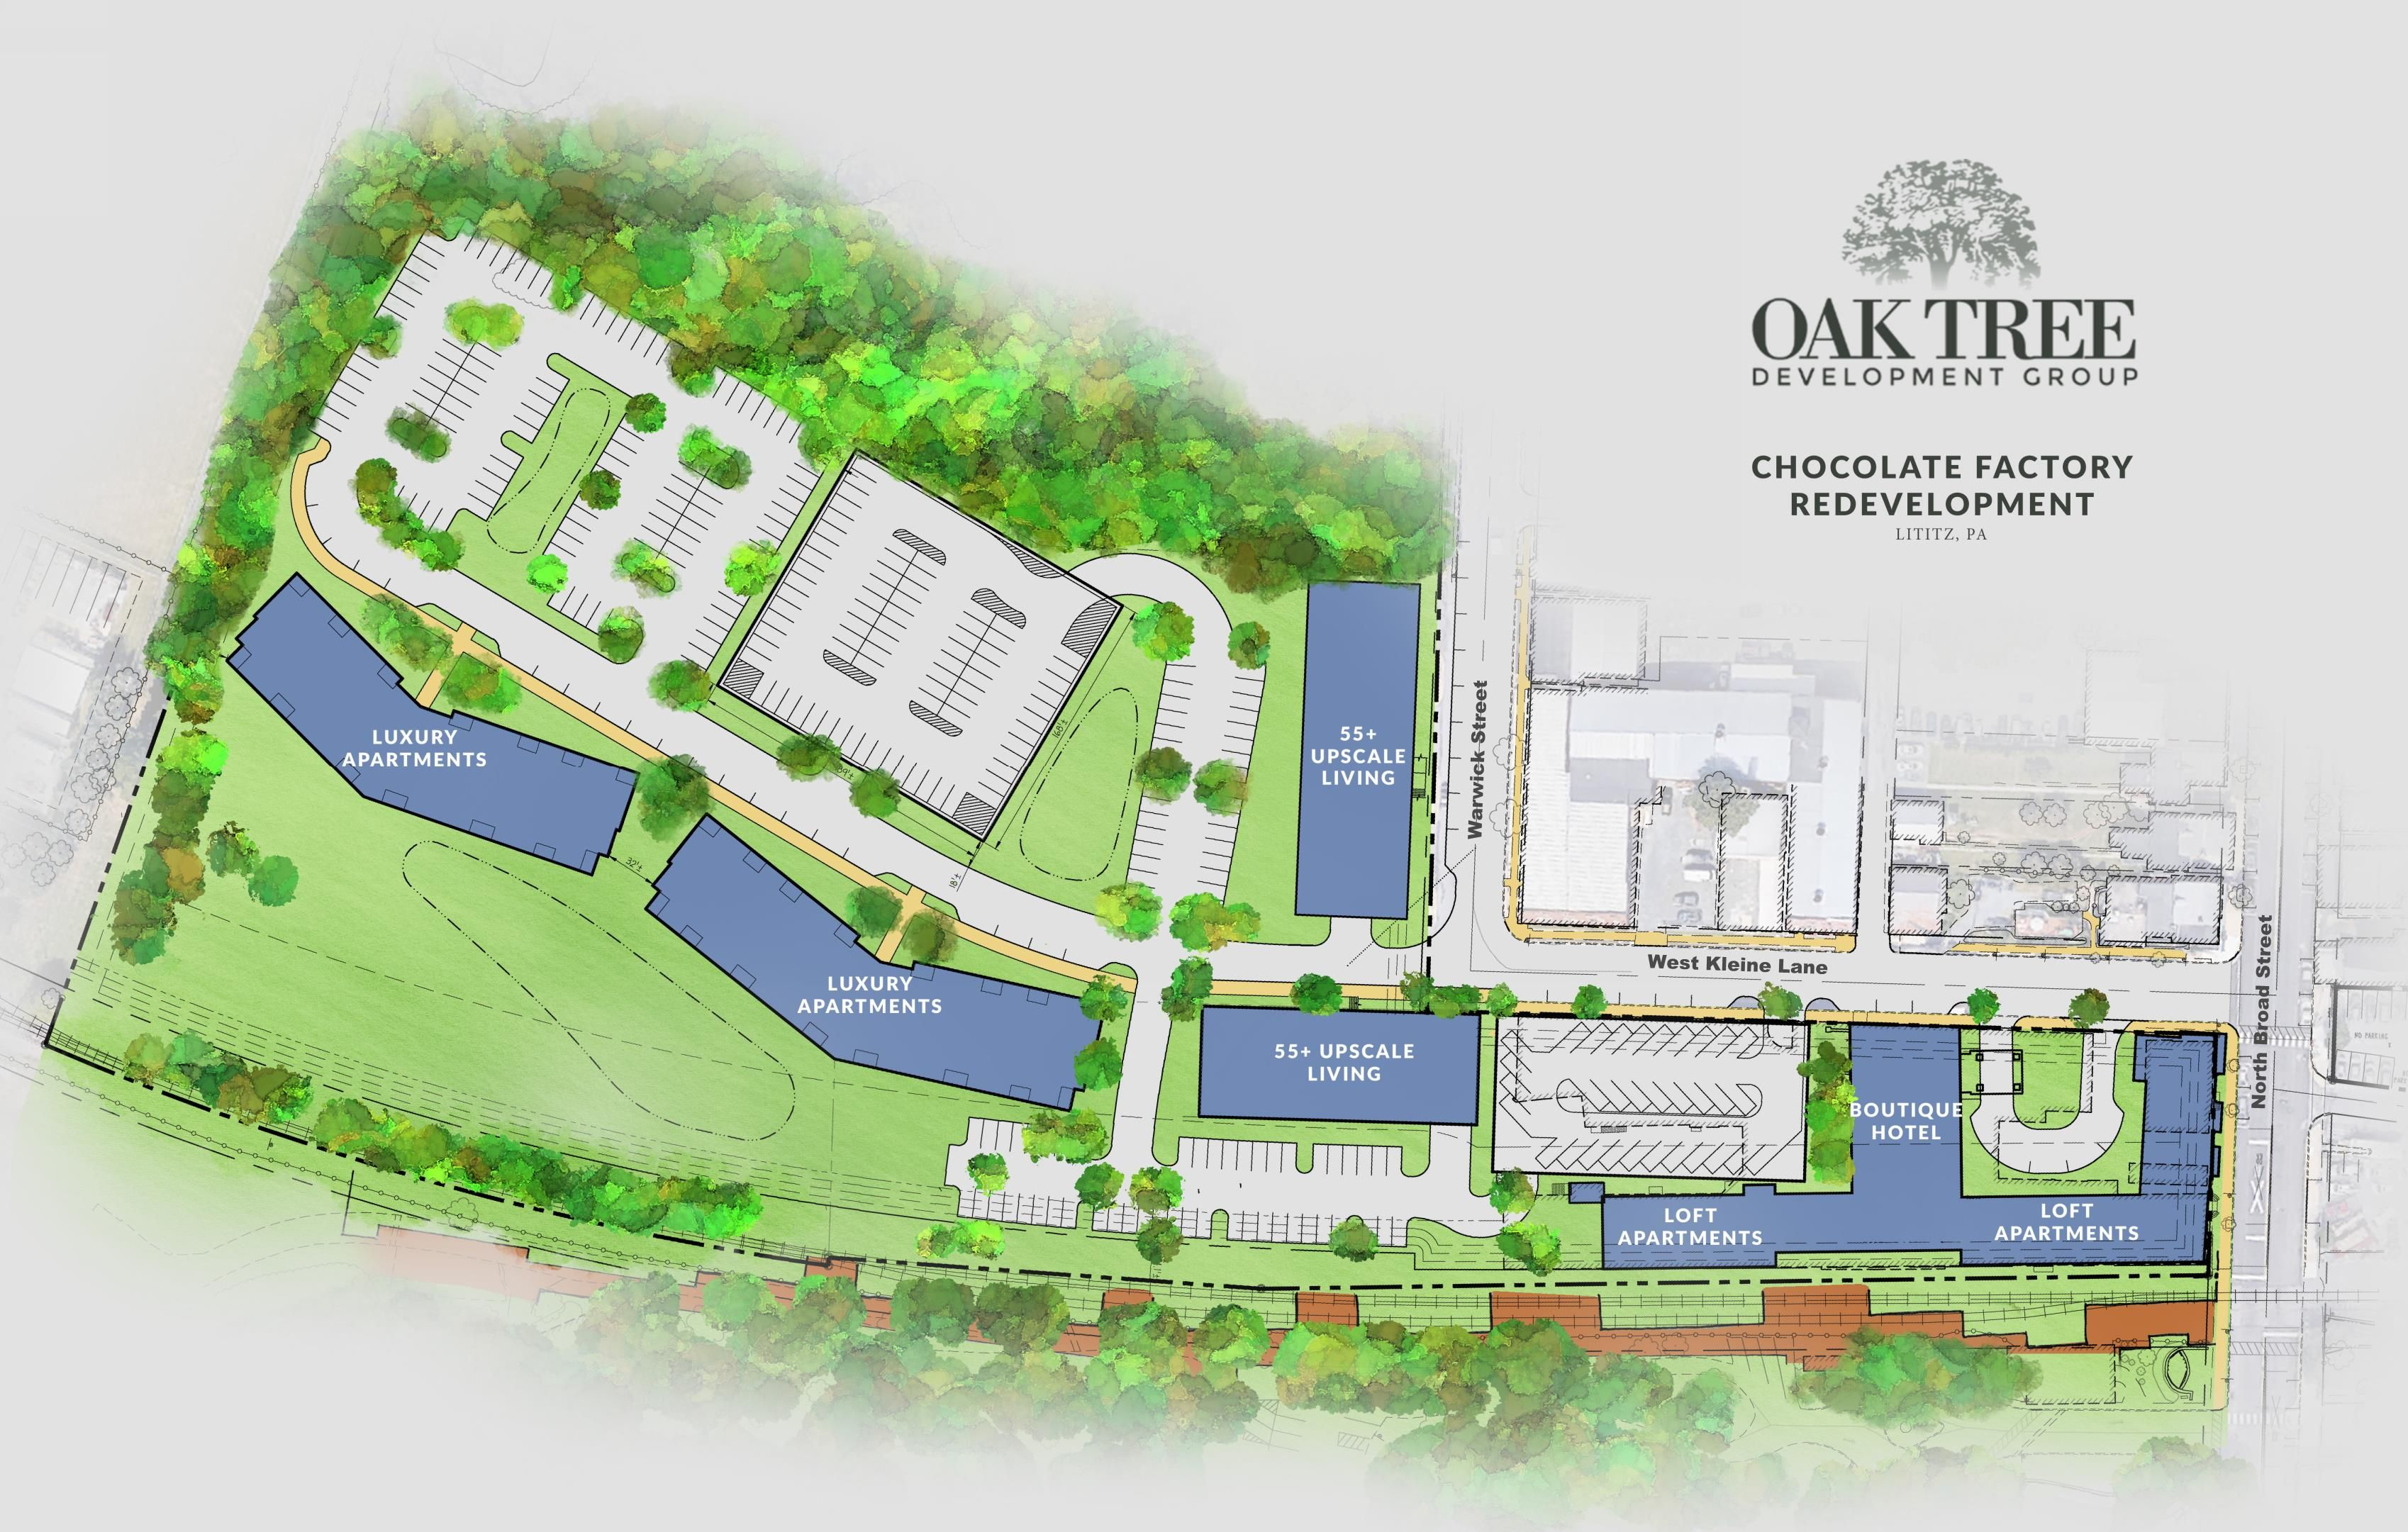 Plans Unveiled For Former Wilbur Complex Lititz Record Express Lititz How To Plan Expressions